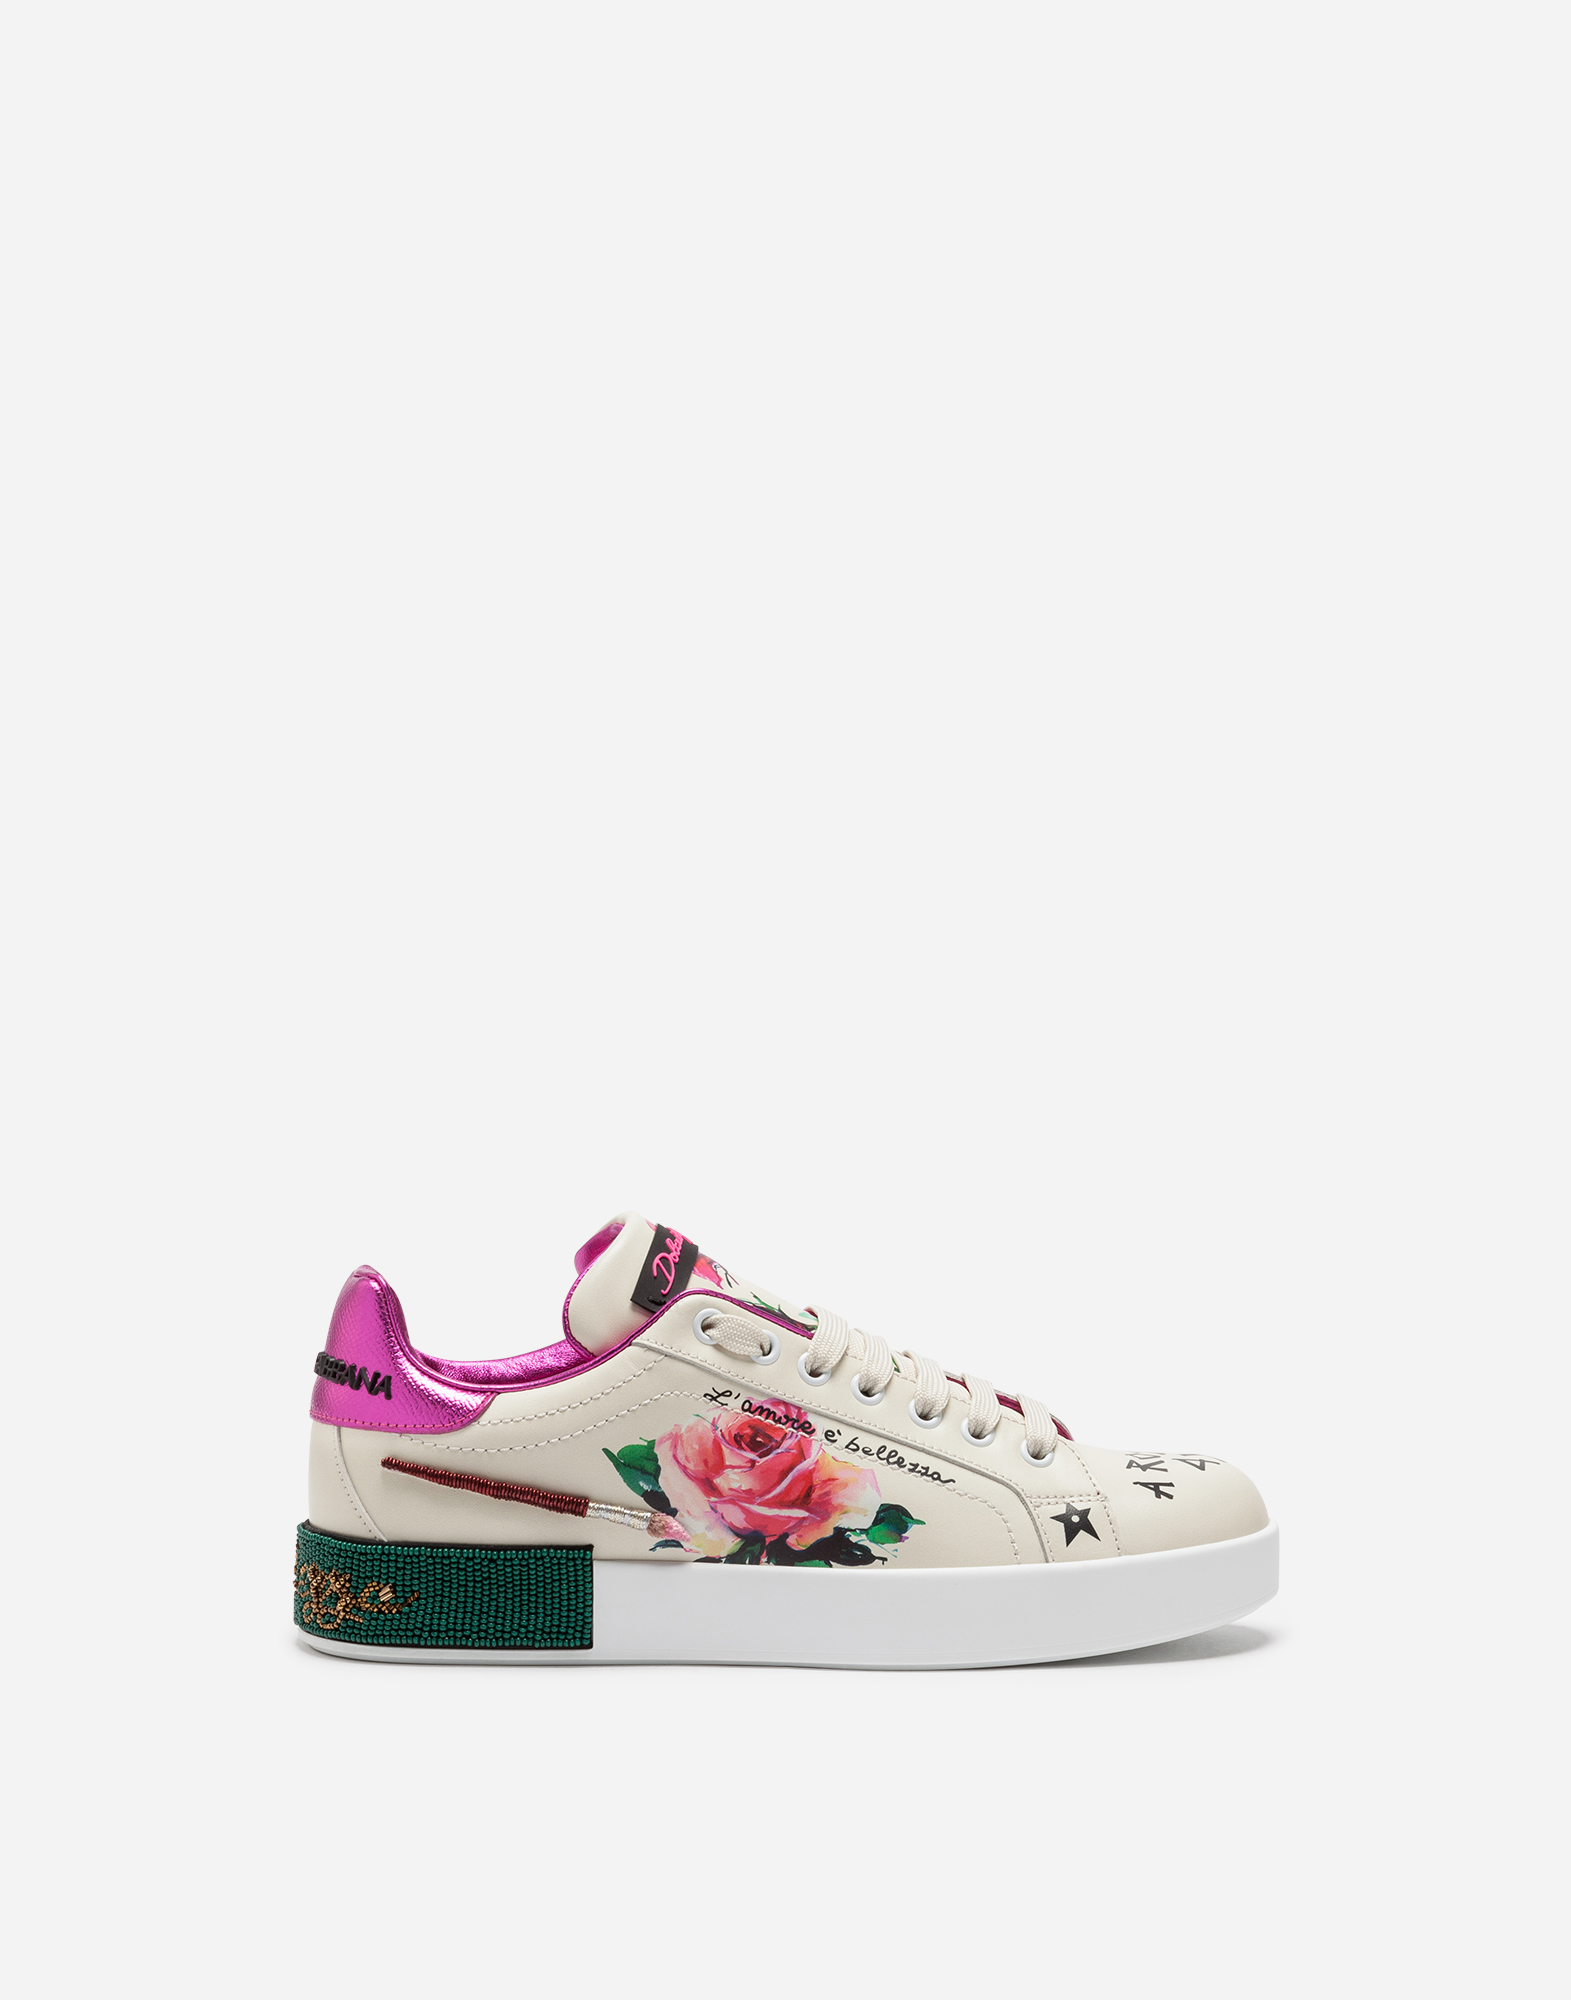 Dolce & Gabbana PORTOFINO SNEAKERS IN PRINTED CALFSKIN WITH PATCH AND EMBROIDERY